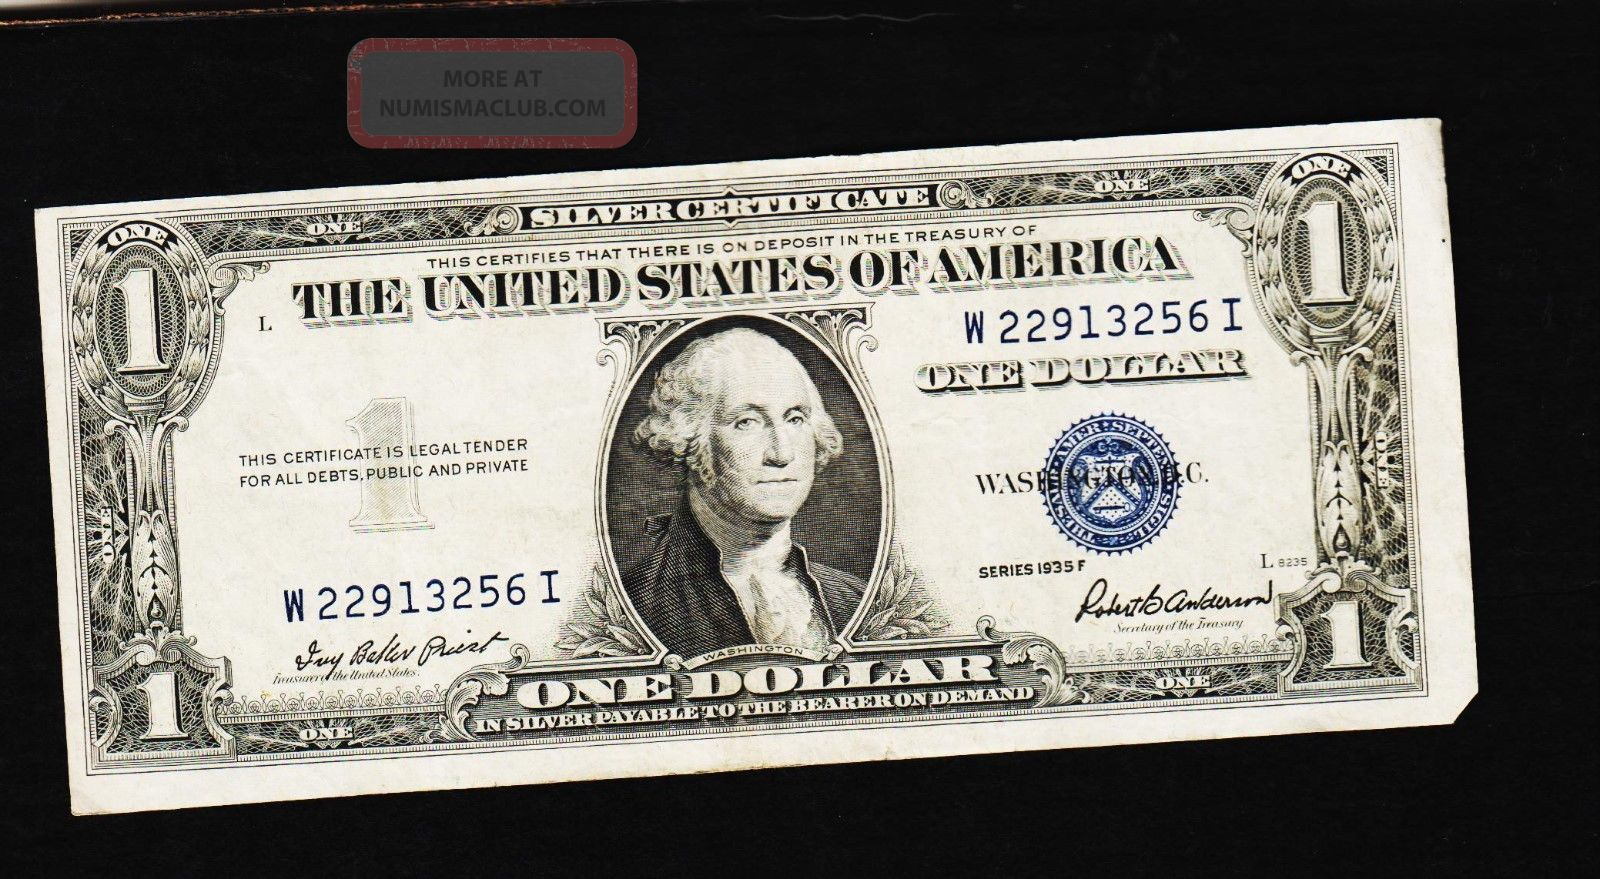 Series 1935 F One Dollar Silver Certificategoodcrisp